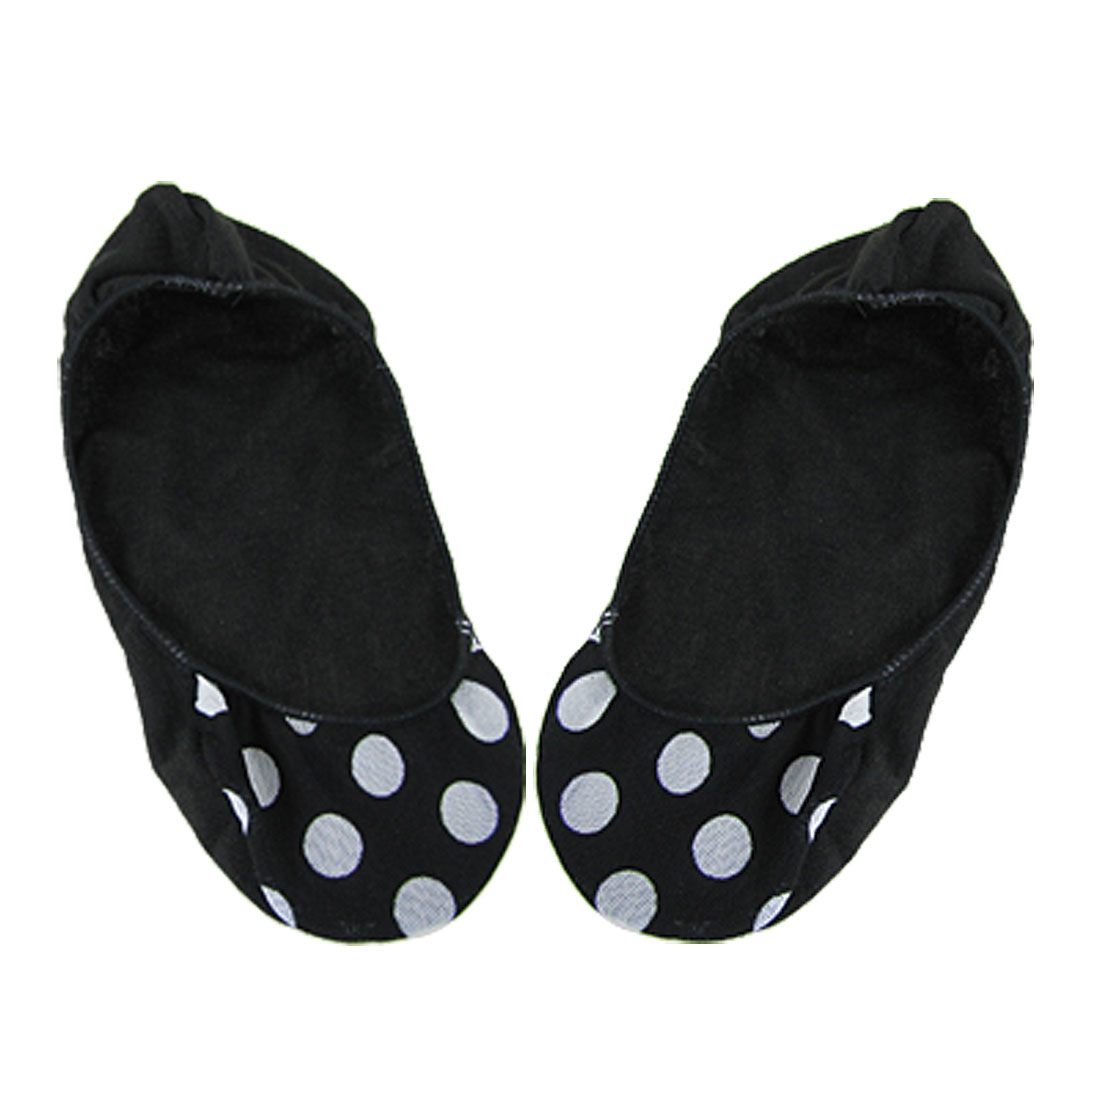 Soft Elastic Dots Print No Show Boat Socks Black for Girls